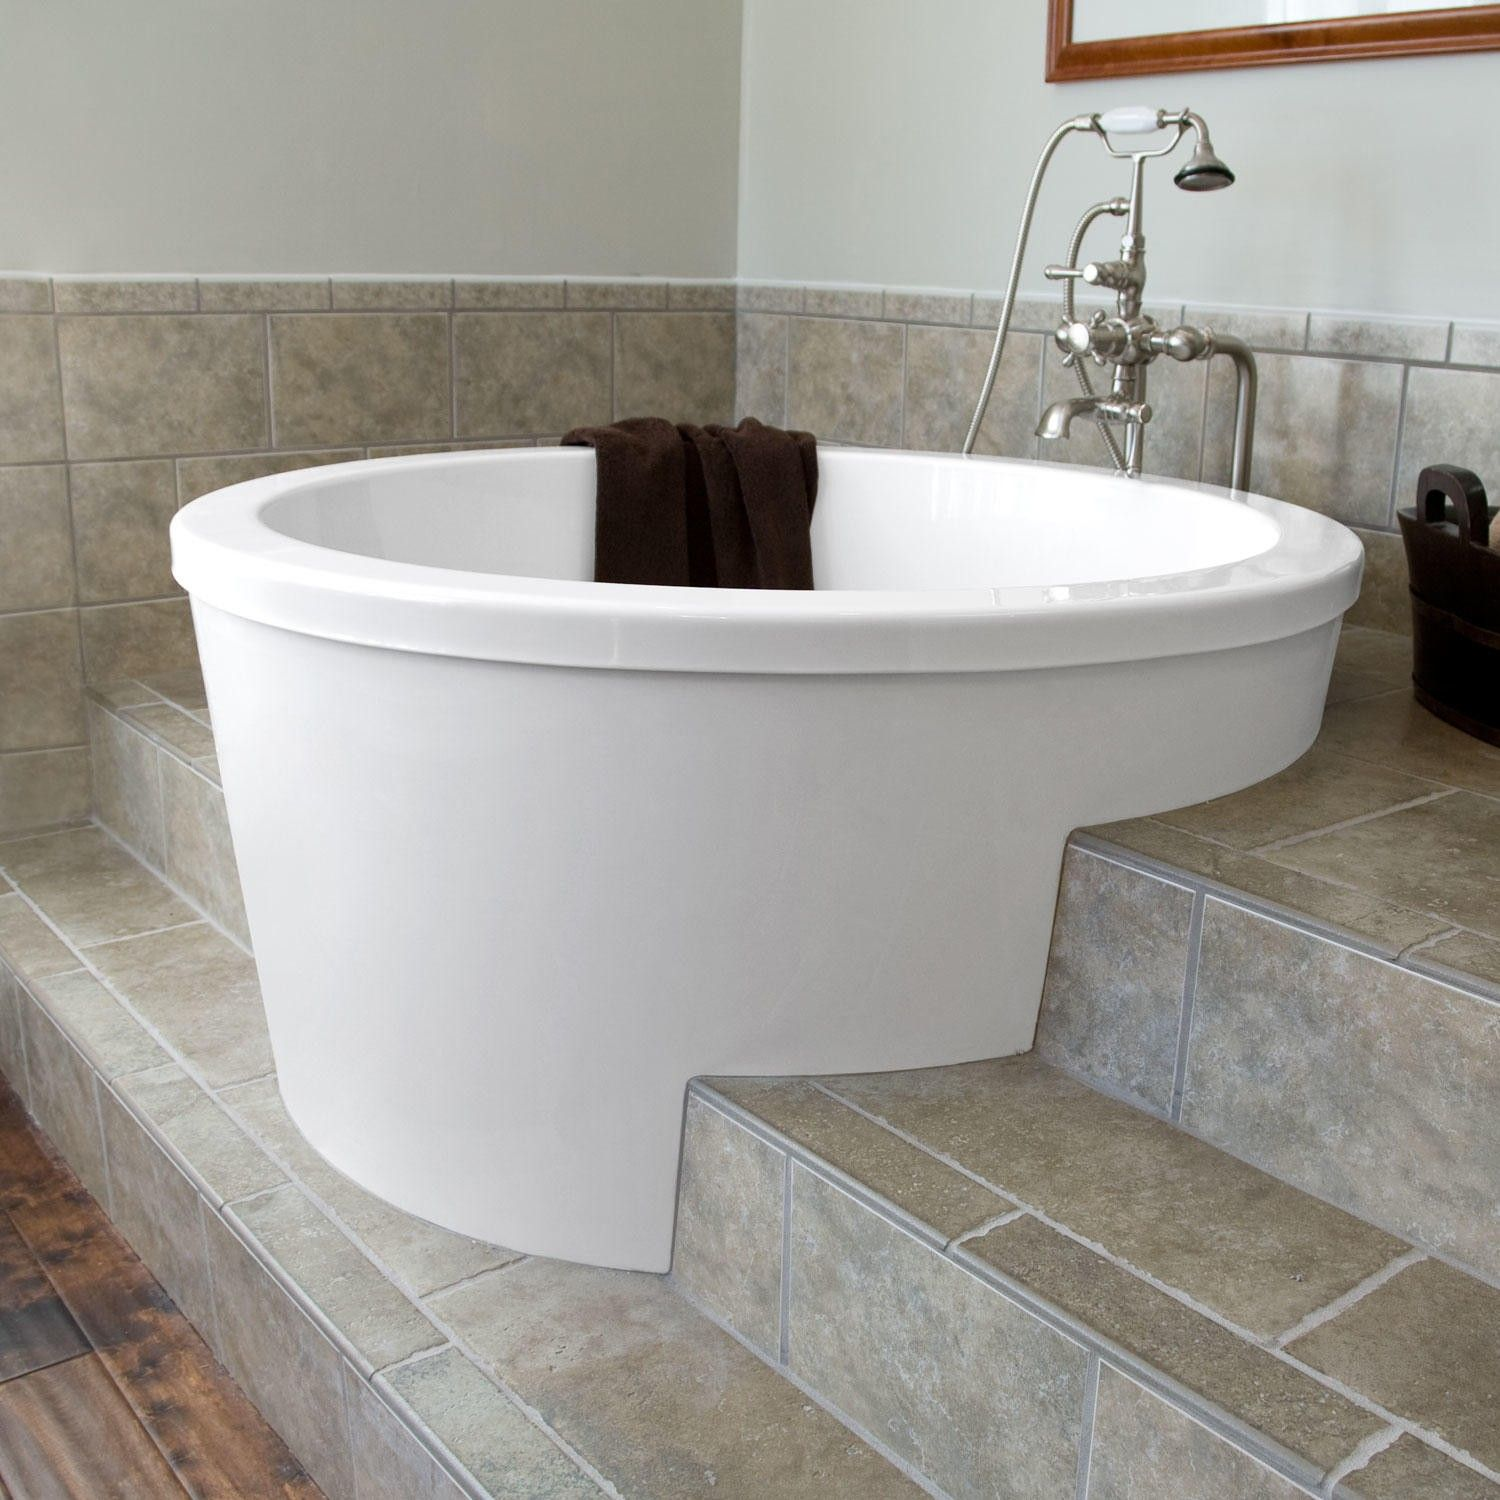 47 Caruso Round Japanese Soaking Tub Like The Way Walk Up Steps To Step In And Then Out